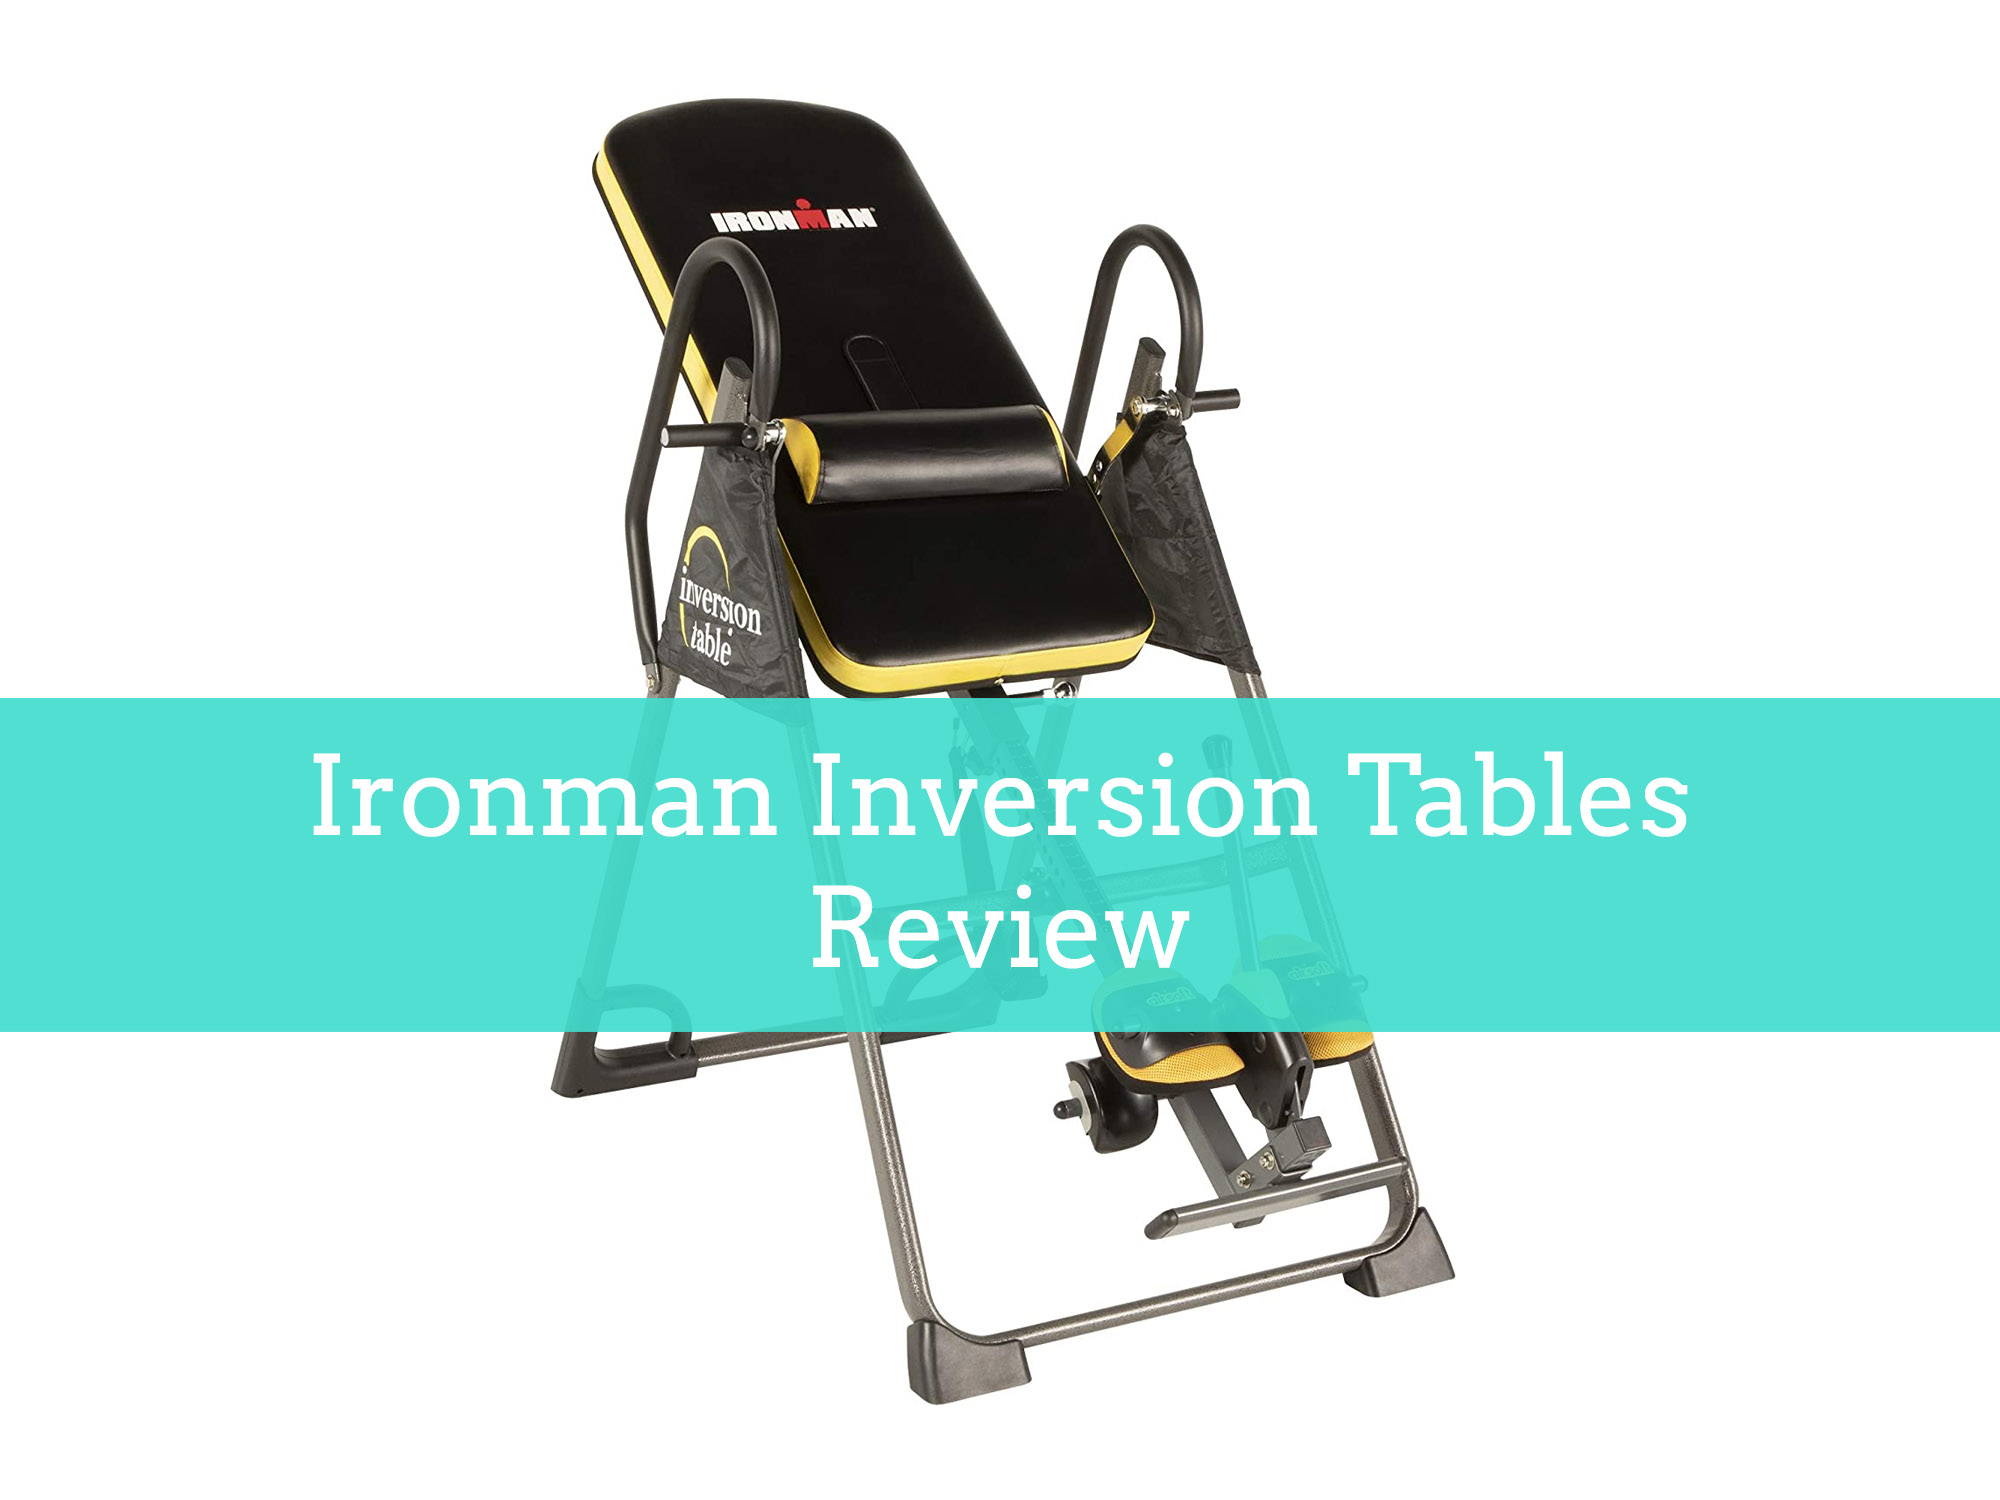 ironman inversion tables review